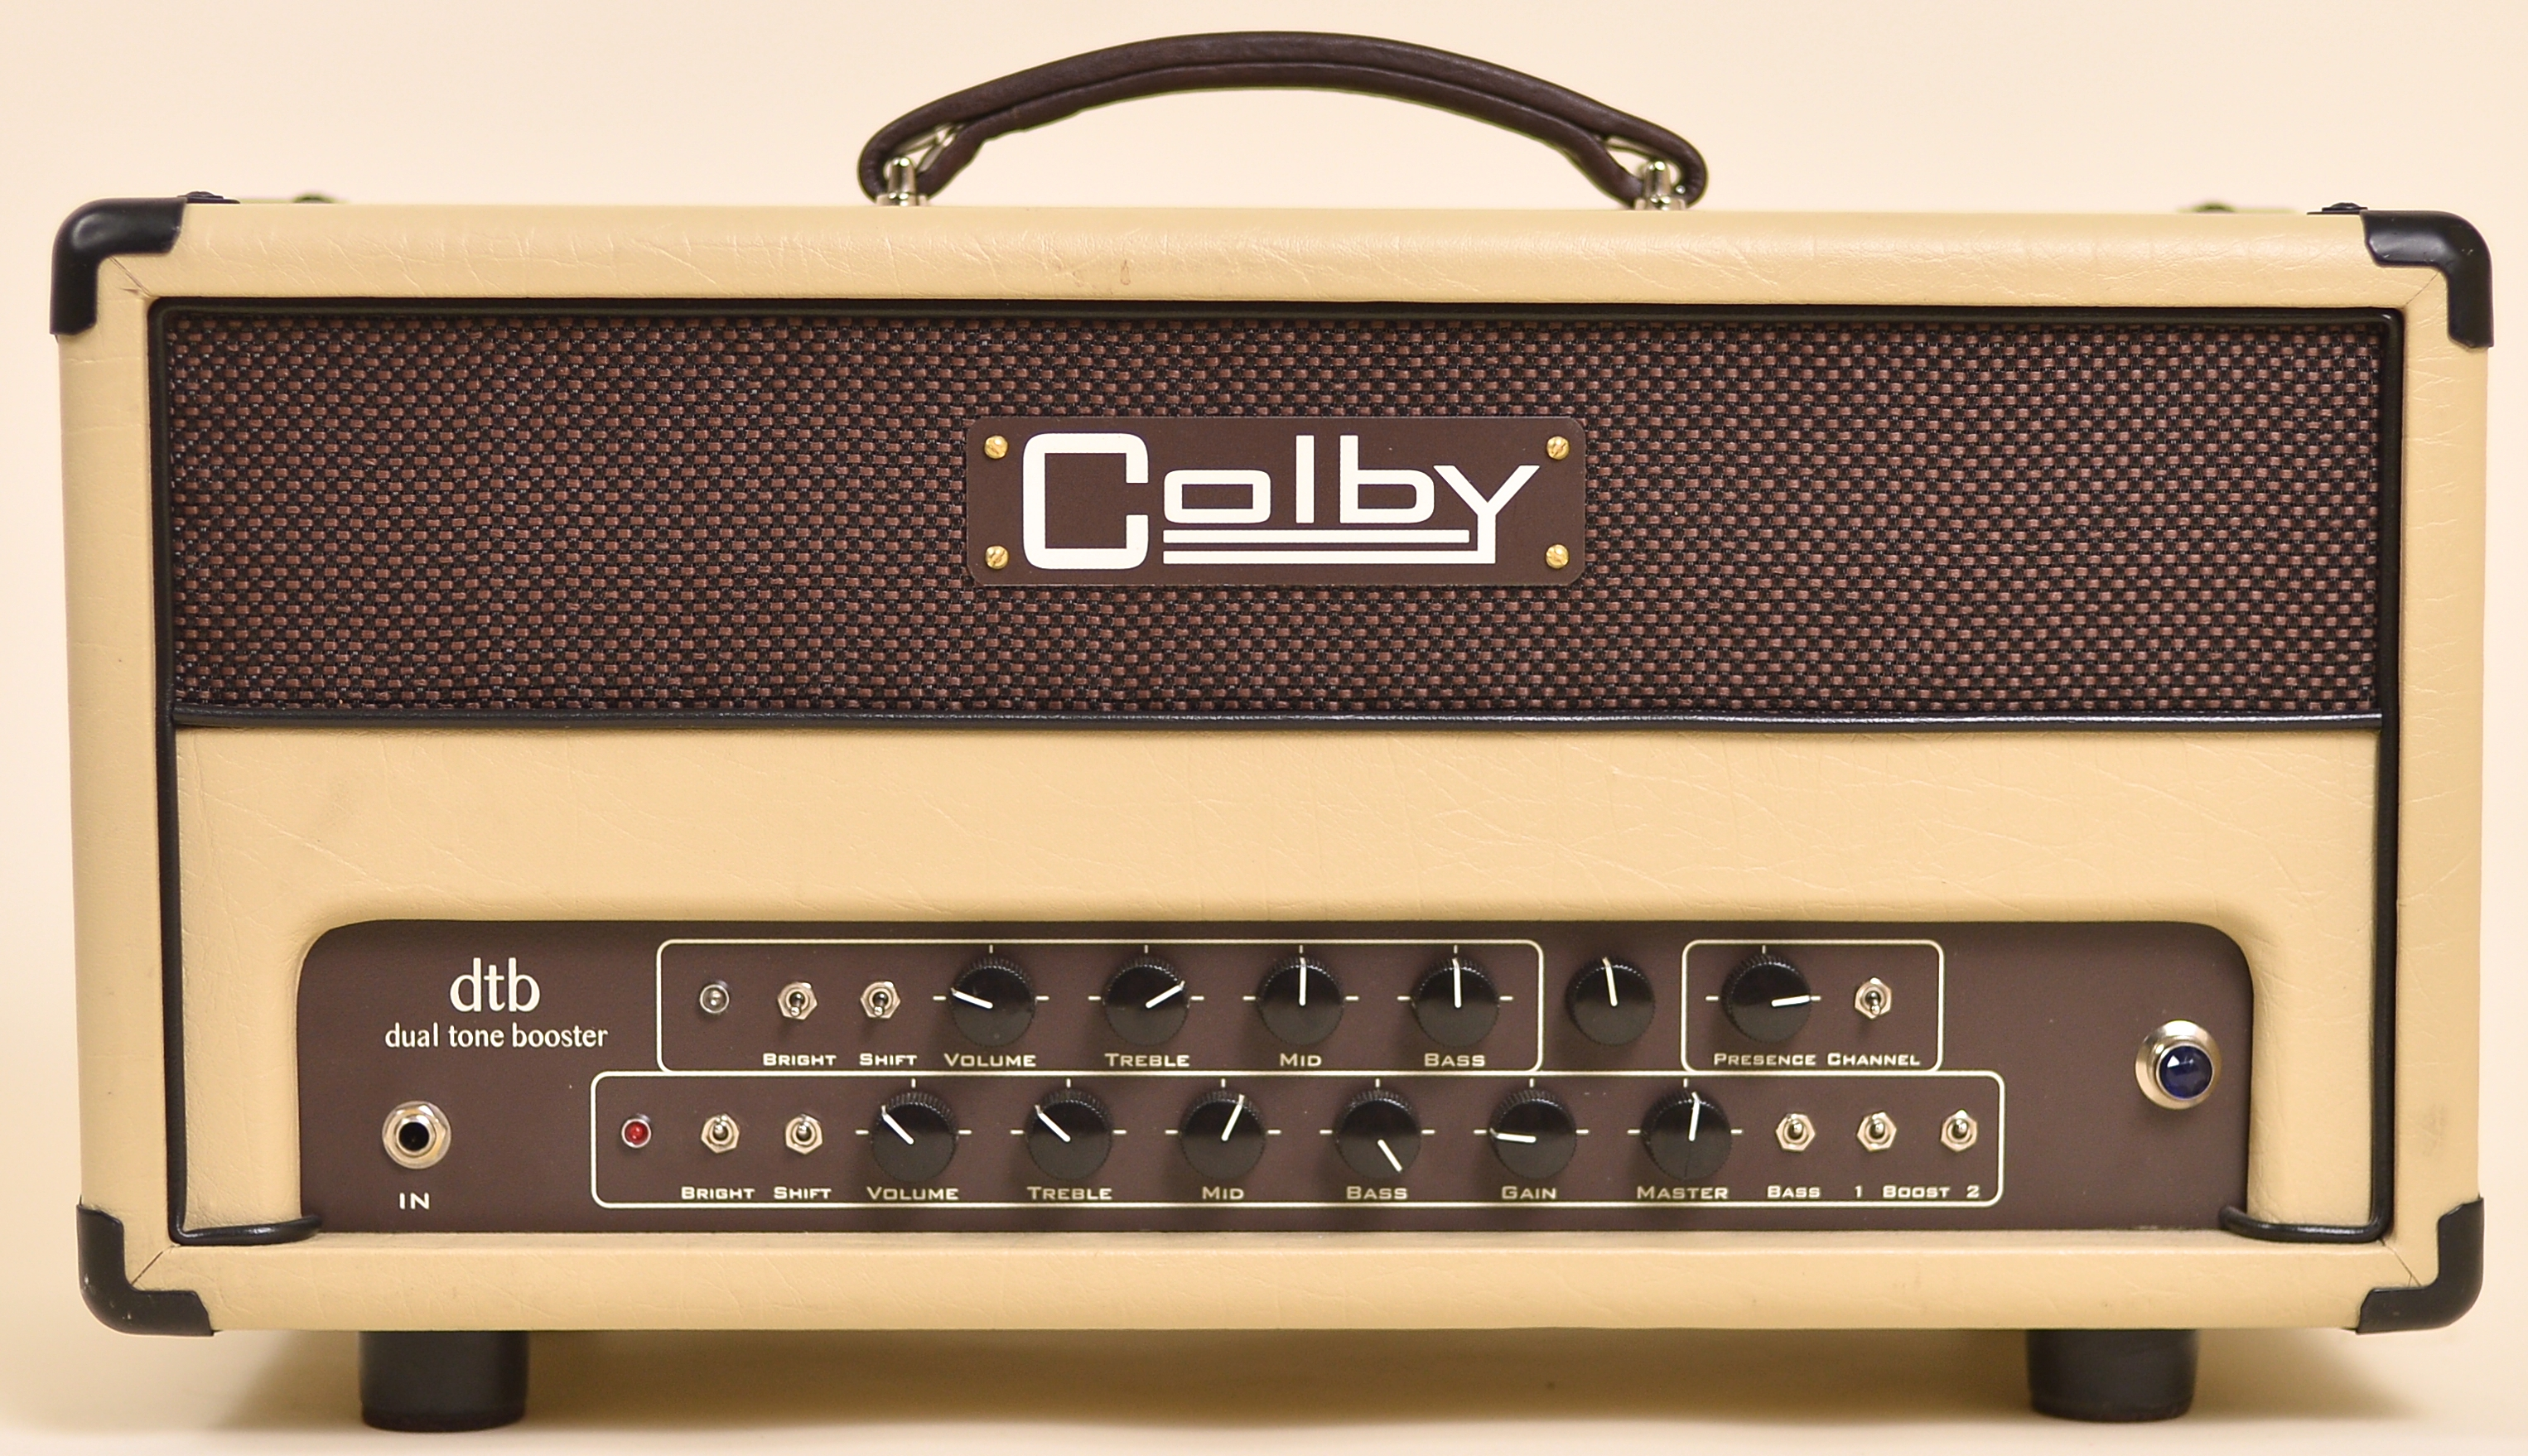 Colby Dual Tone Booster Amplifiers Dtb50 Dtb100 Amplification Audio New Dtb Od Control Master